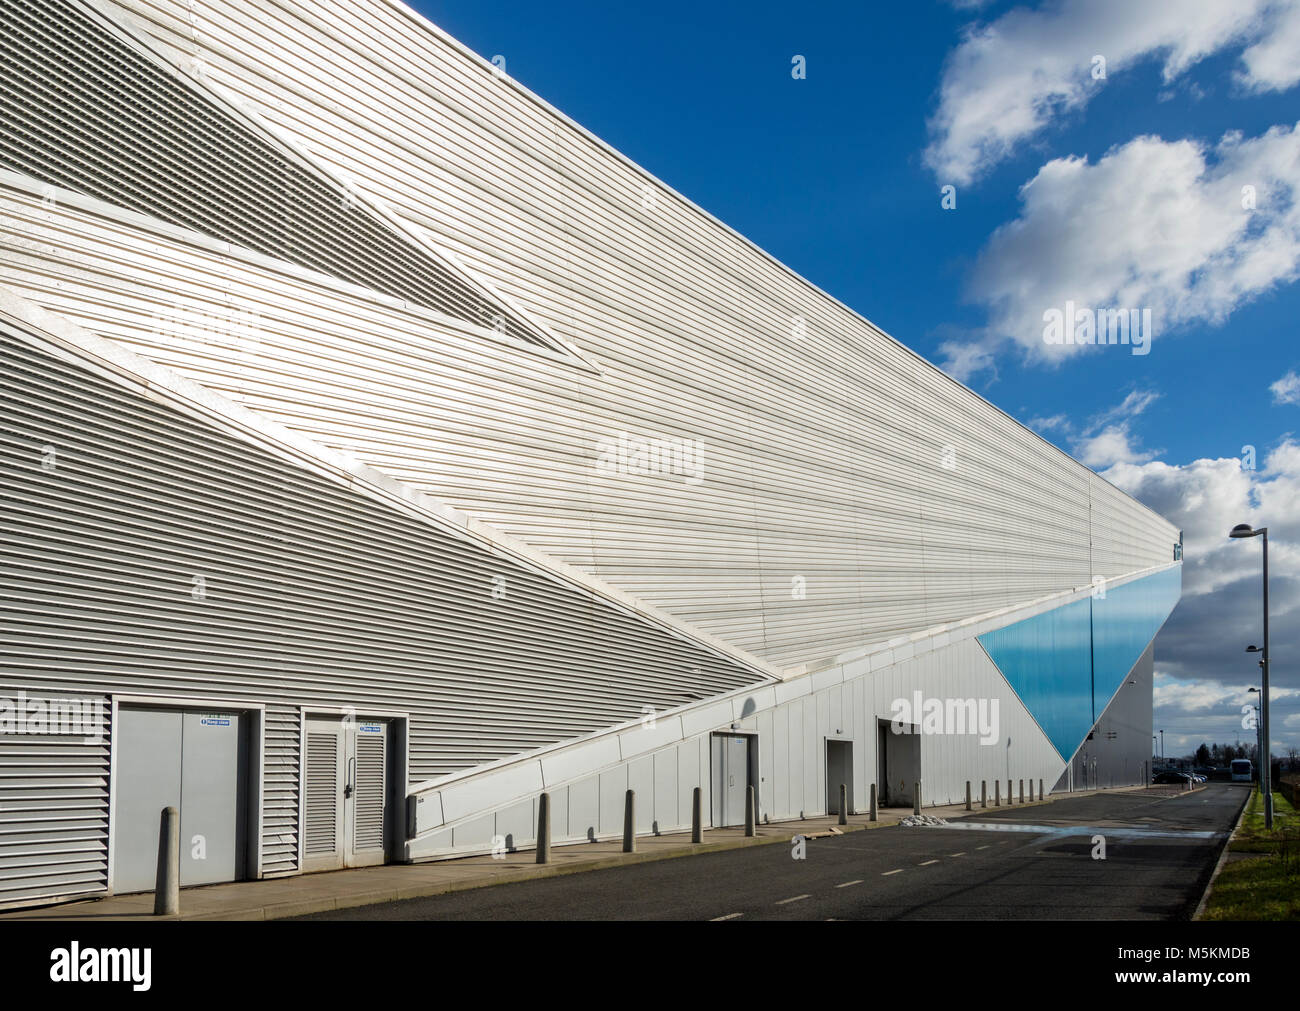 The Chill Factore building (FaulknerBrowns Architects 2007). Indoor skiing, snowboarding and snow activities centre. - Stock Image